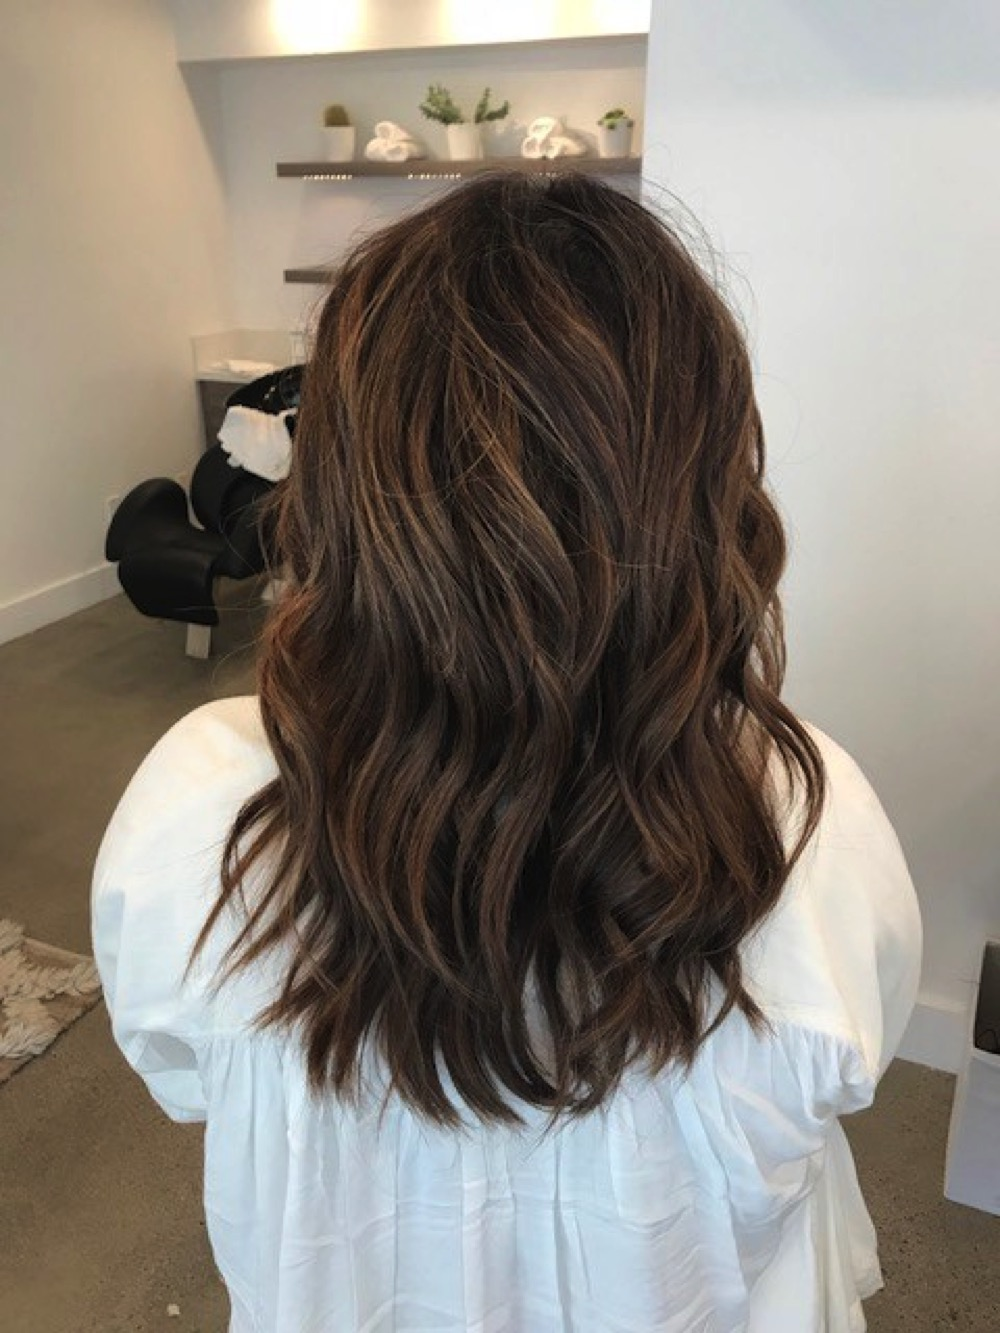 NBR Hair Extensions by Stacie